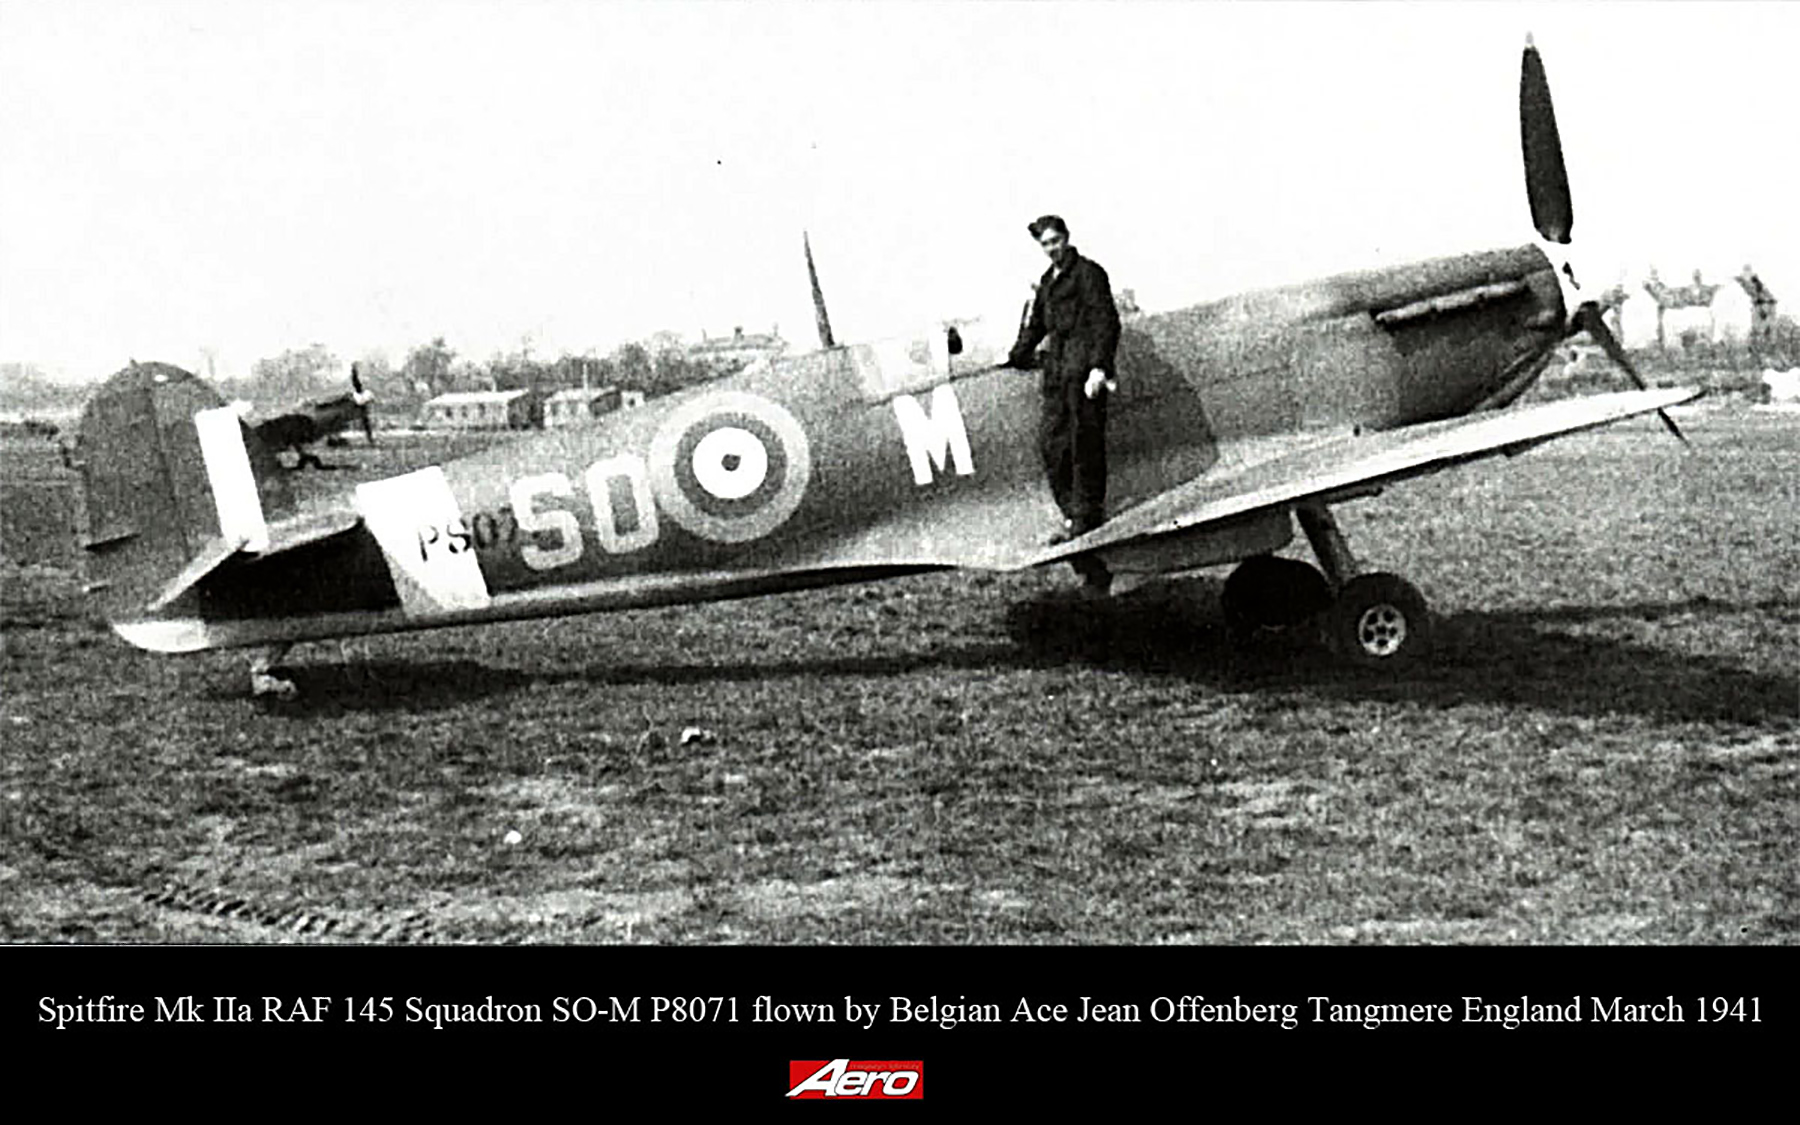 Spitfire MkIIa RAF 145Sqn SOM P8071 Jean Offenberg Tangmere England March 1941 01